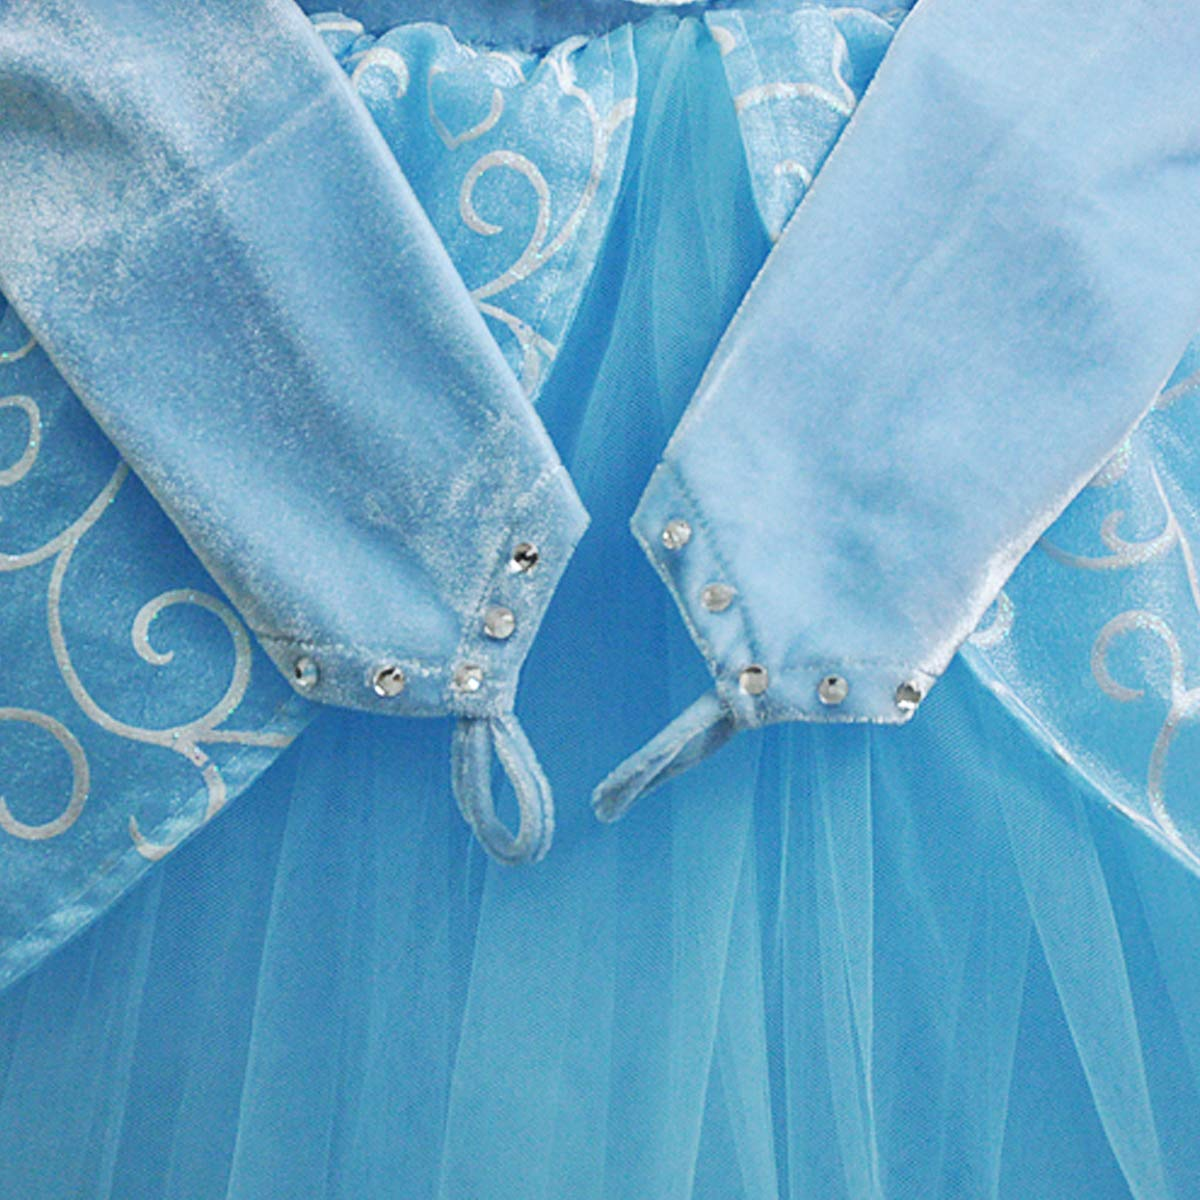 Cinderella Costumes Girls Princess Dress Up Fancy Halloween Christmas Party with Tiara and Choker Set Blue by TYHTYM (Image #7)